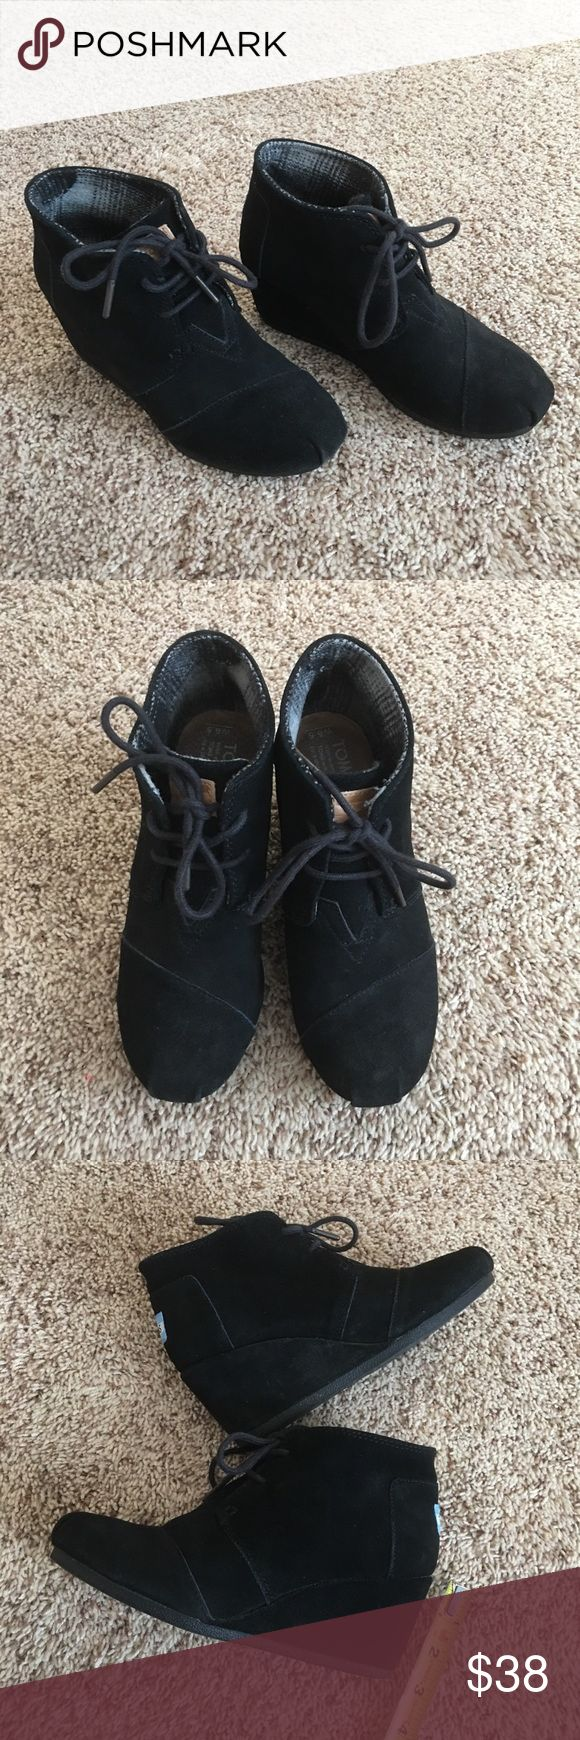 Authentic Toms Black Wedge Shoes Authentic! Gorgeous Toms black shoes💕 Size 6.5 and very comfortable! These are USED and in good condition. NO TRADE ❌ FINAL PRICE, NO DISCOUNT ❌ Toms Shoes